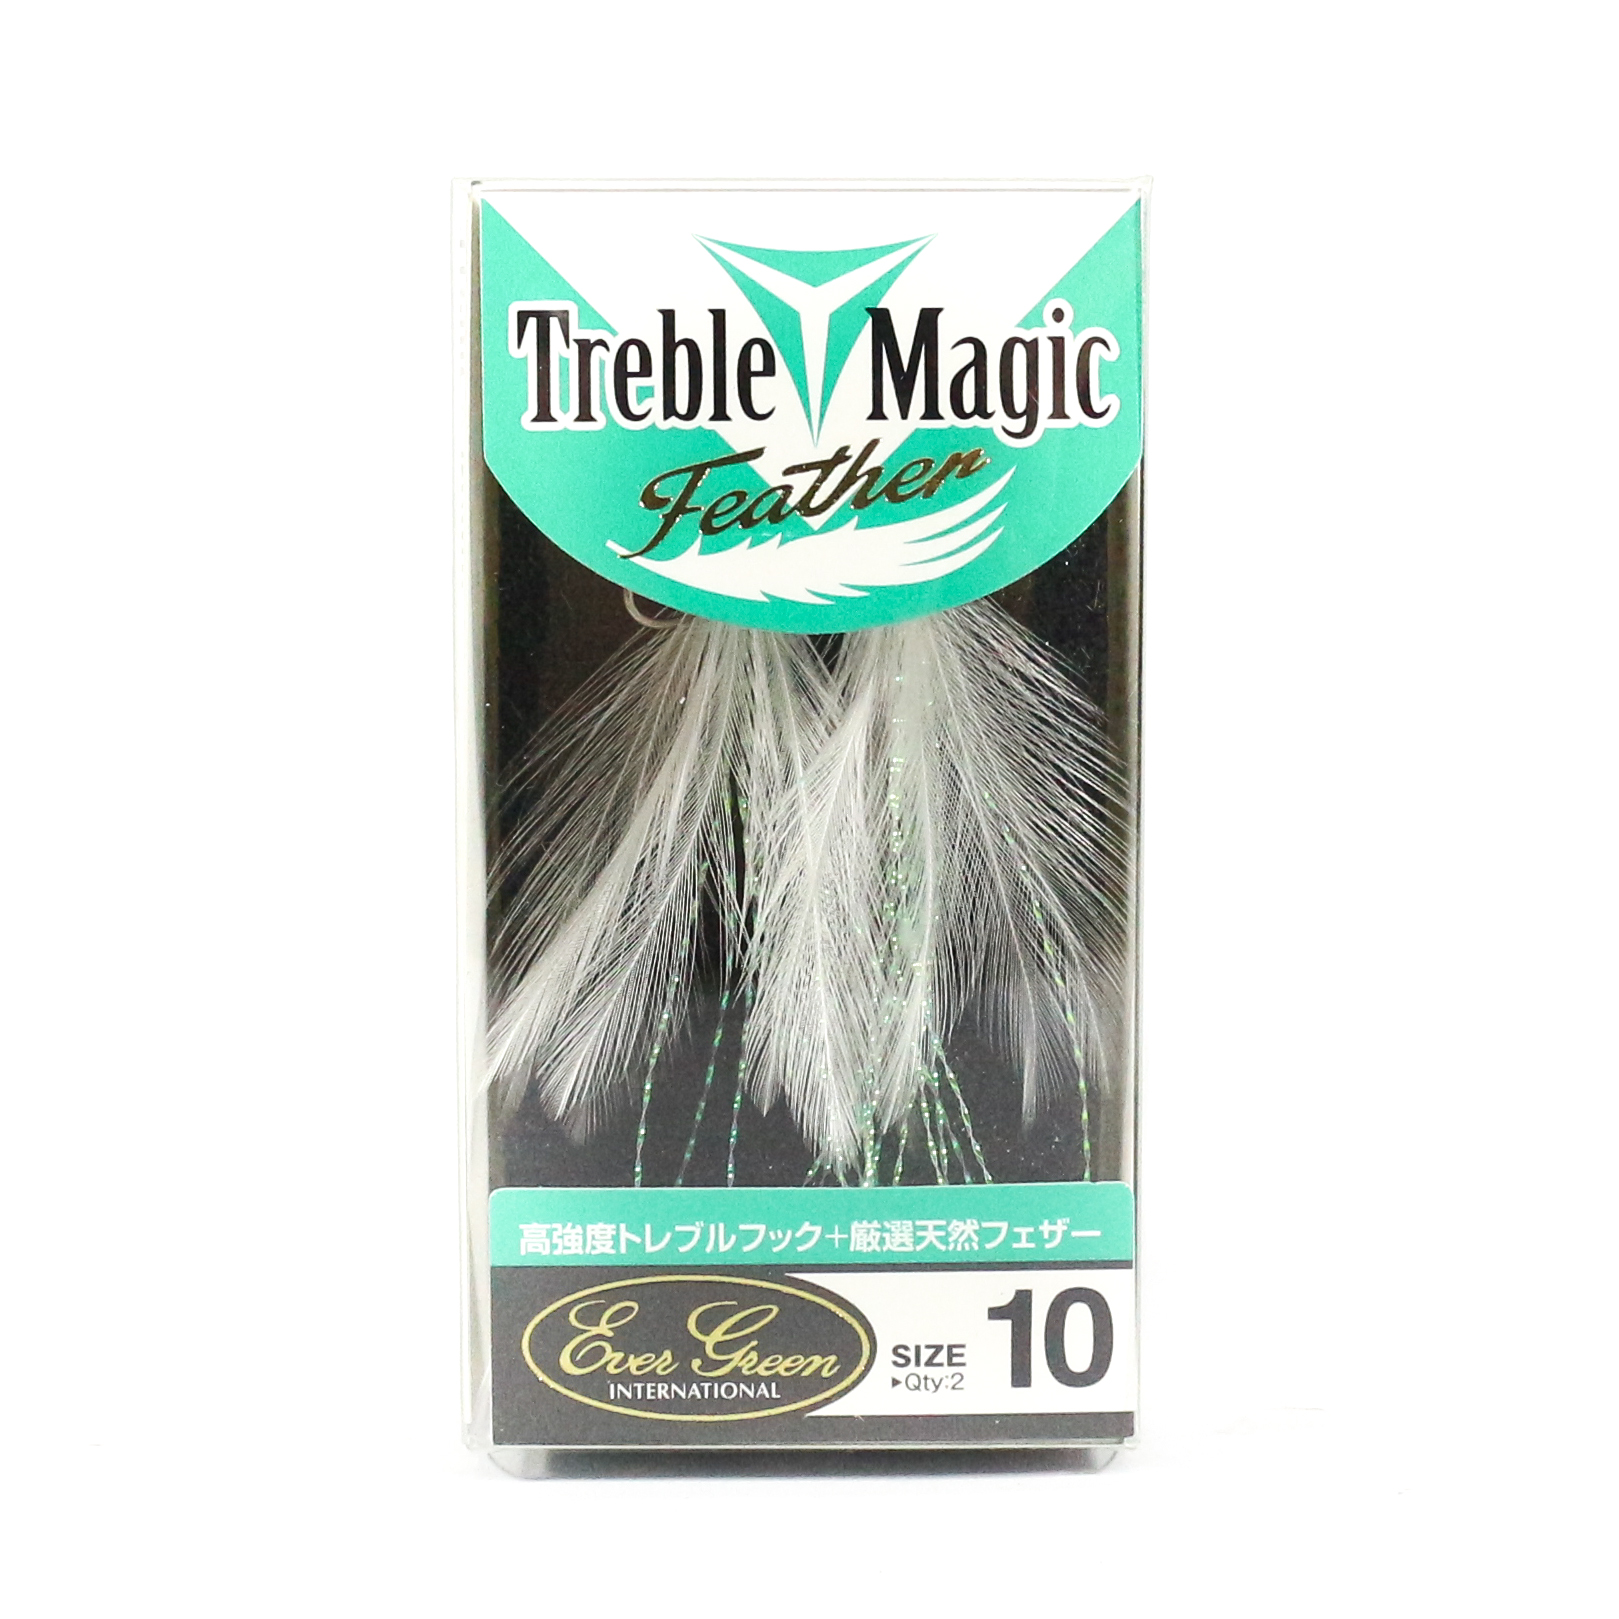 Evergreen Treble Hooks Treble Magic Feather Size 10 (0948)